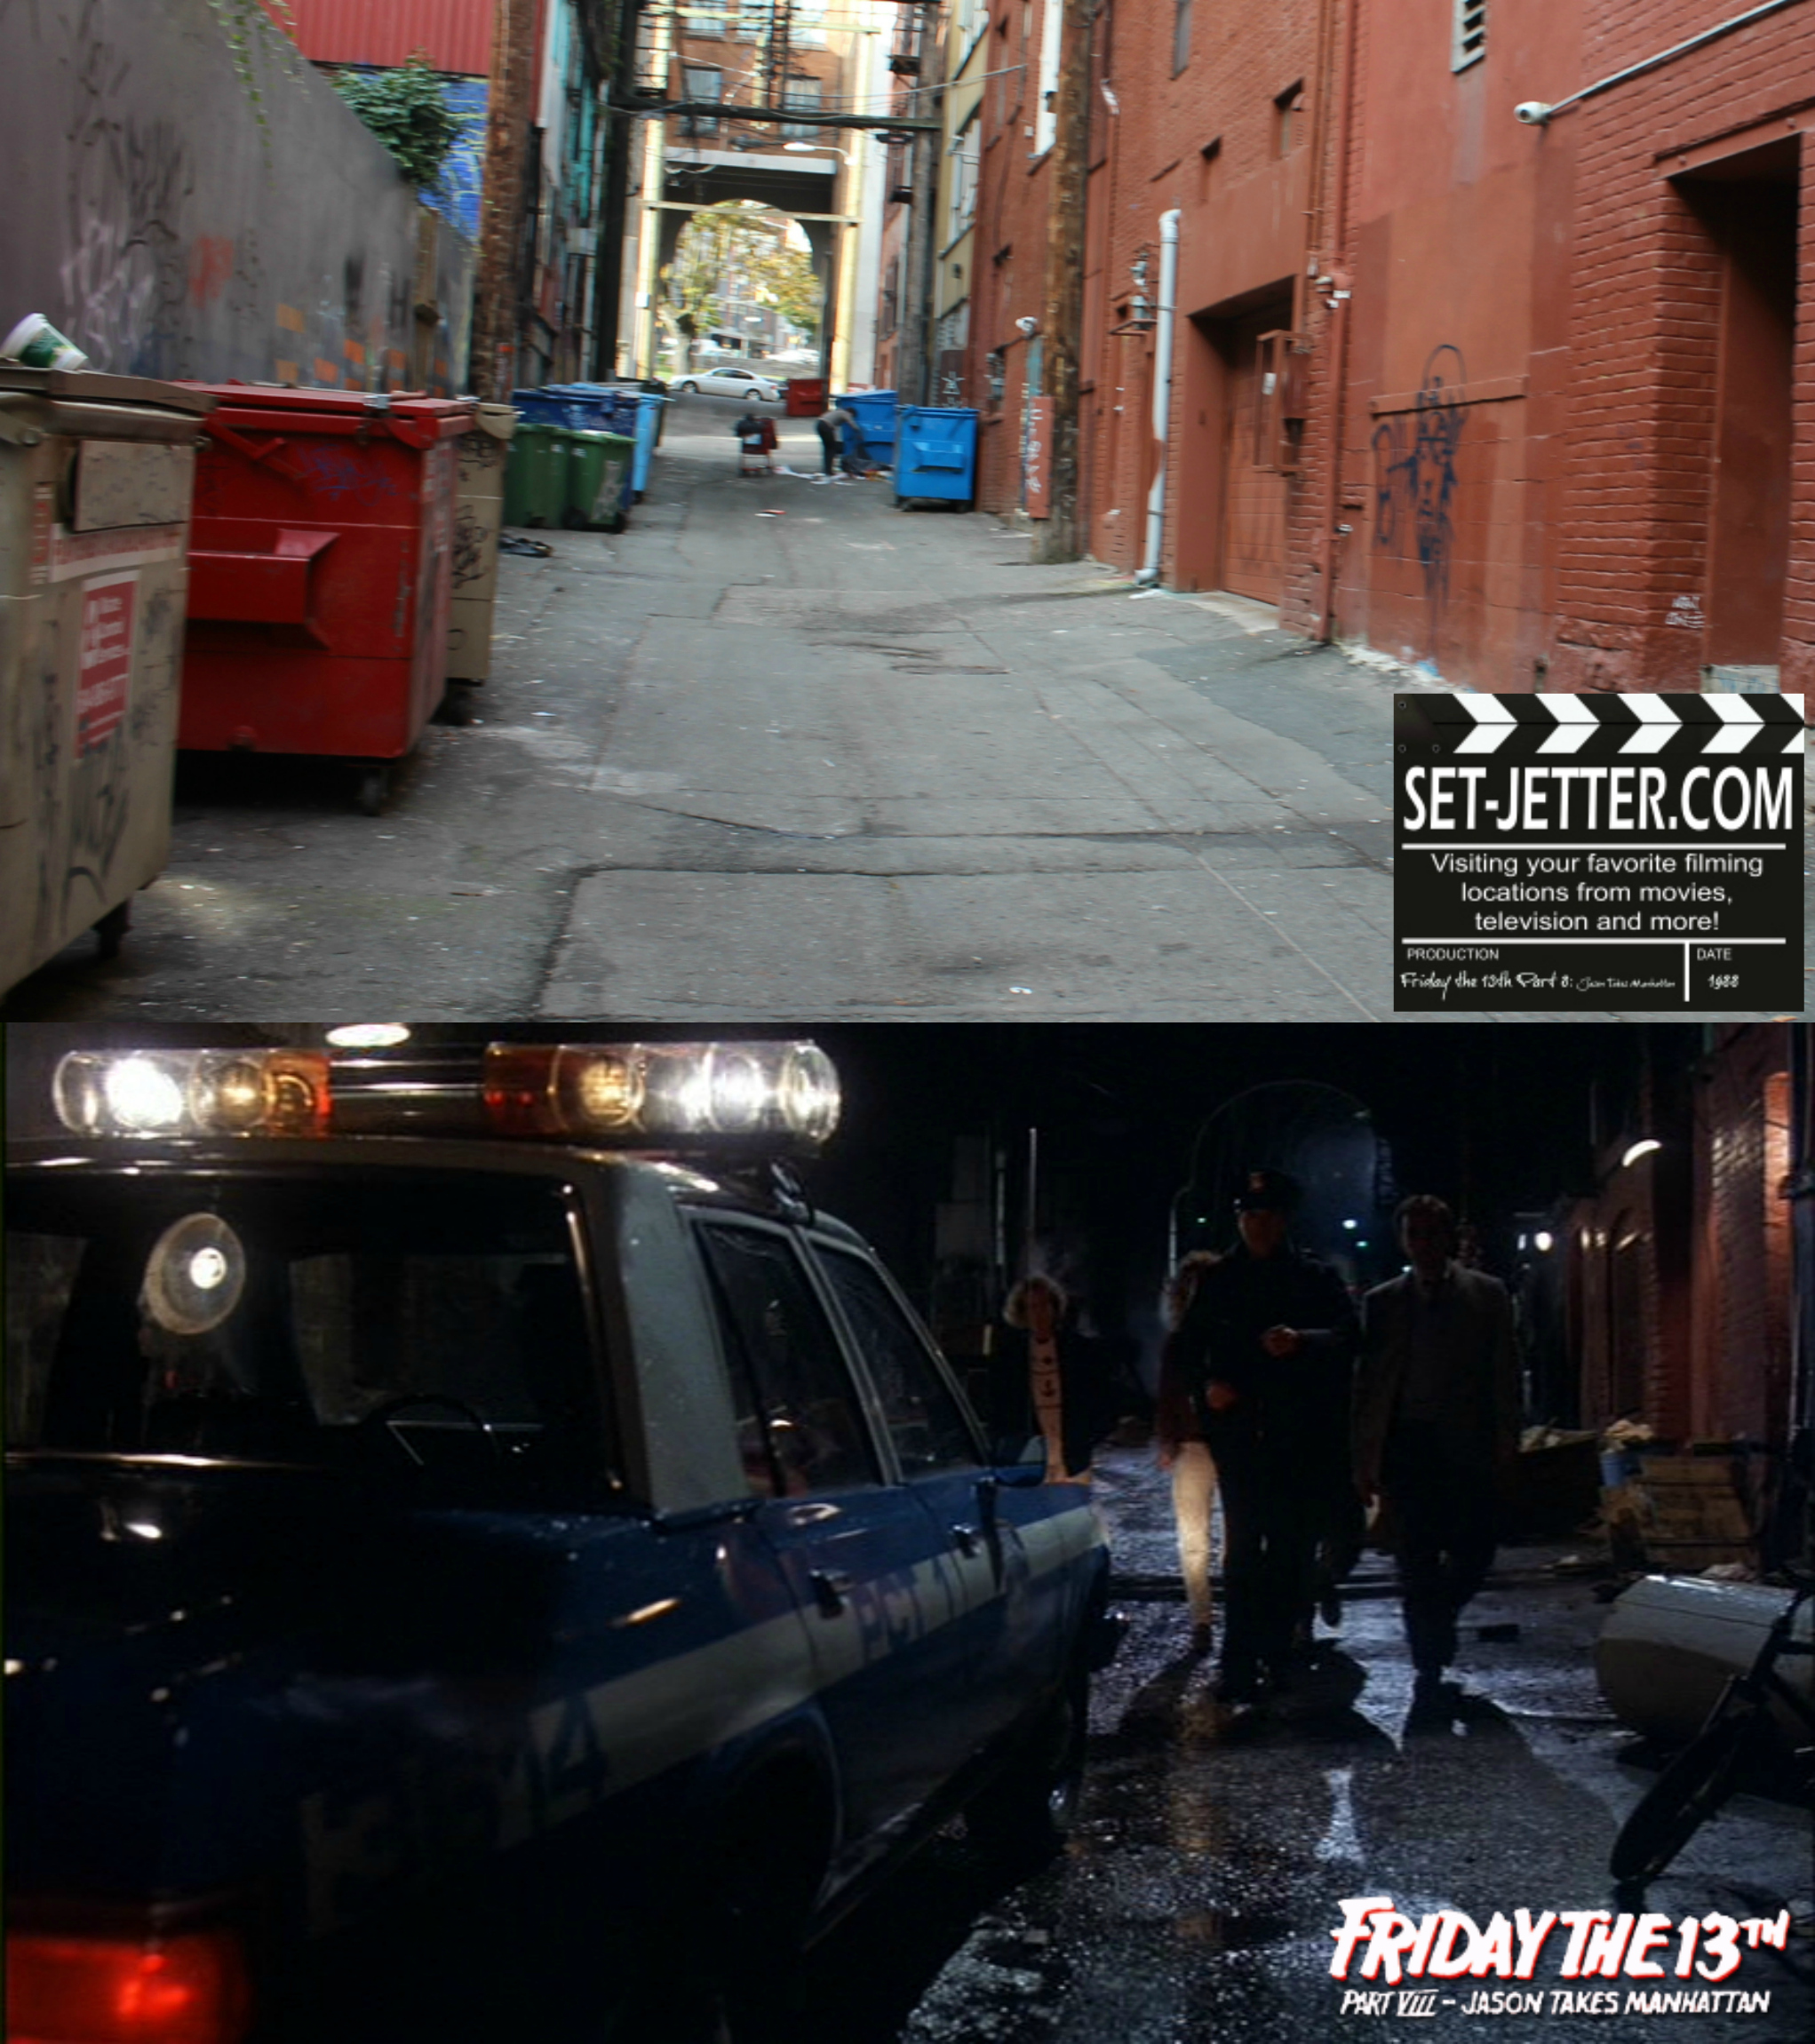 Friday the 13th Part 8 comparison 44.jpg